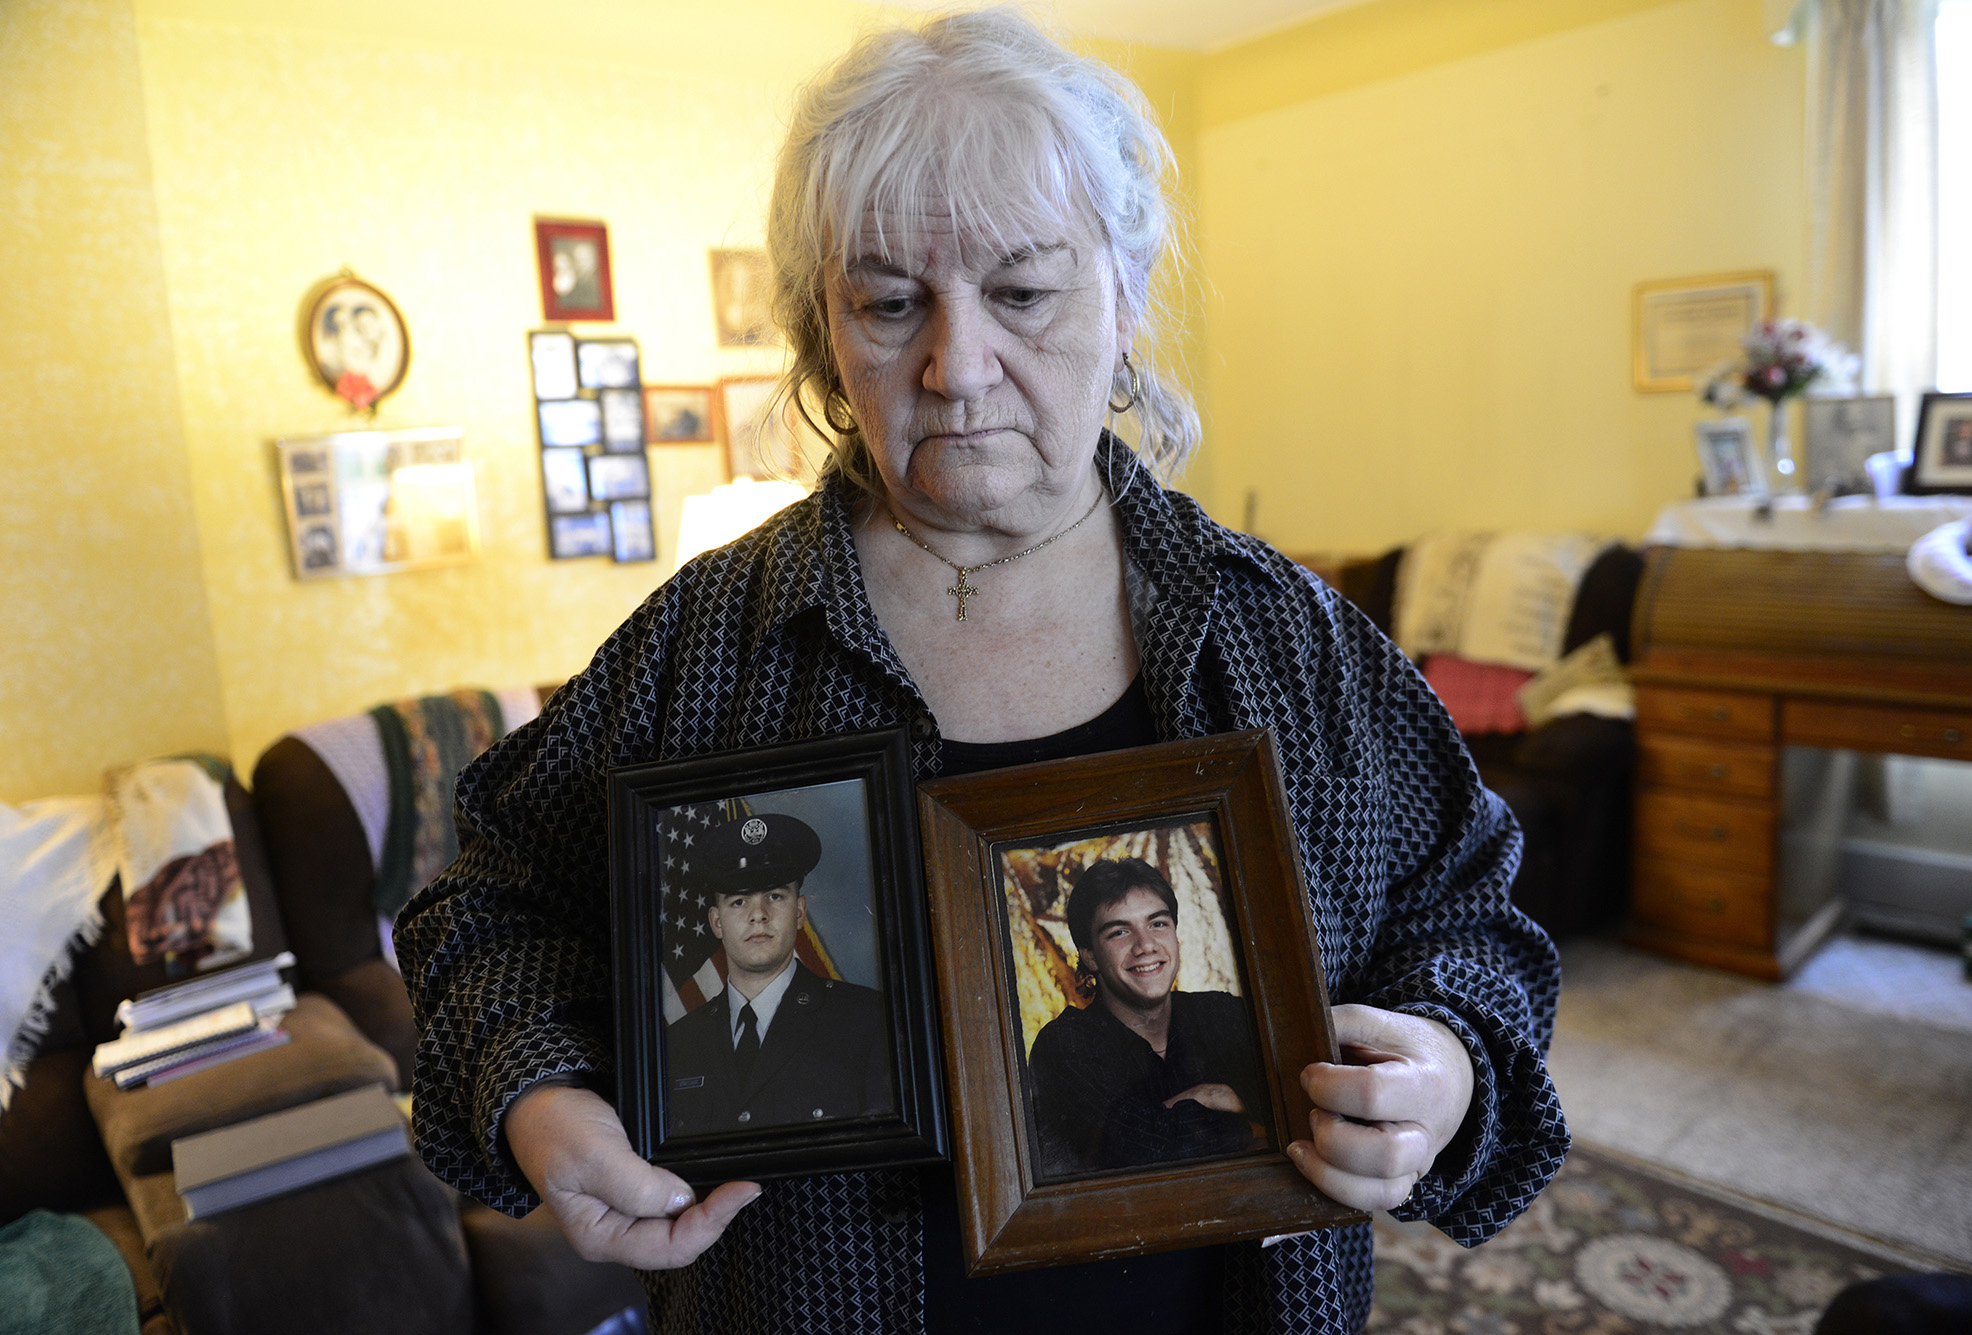 Lois Waggoner, 73, of Fremont holds photos of her two sons who died, contributing to her suicidal thoughts. She said she's has been hospitalized four times for manic episodes and five or six times for severe depression.